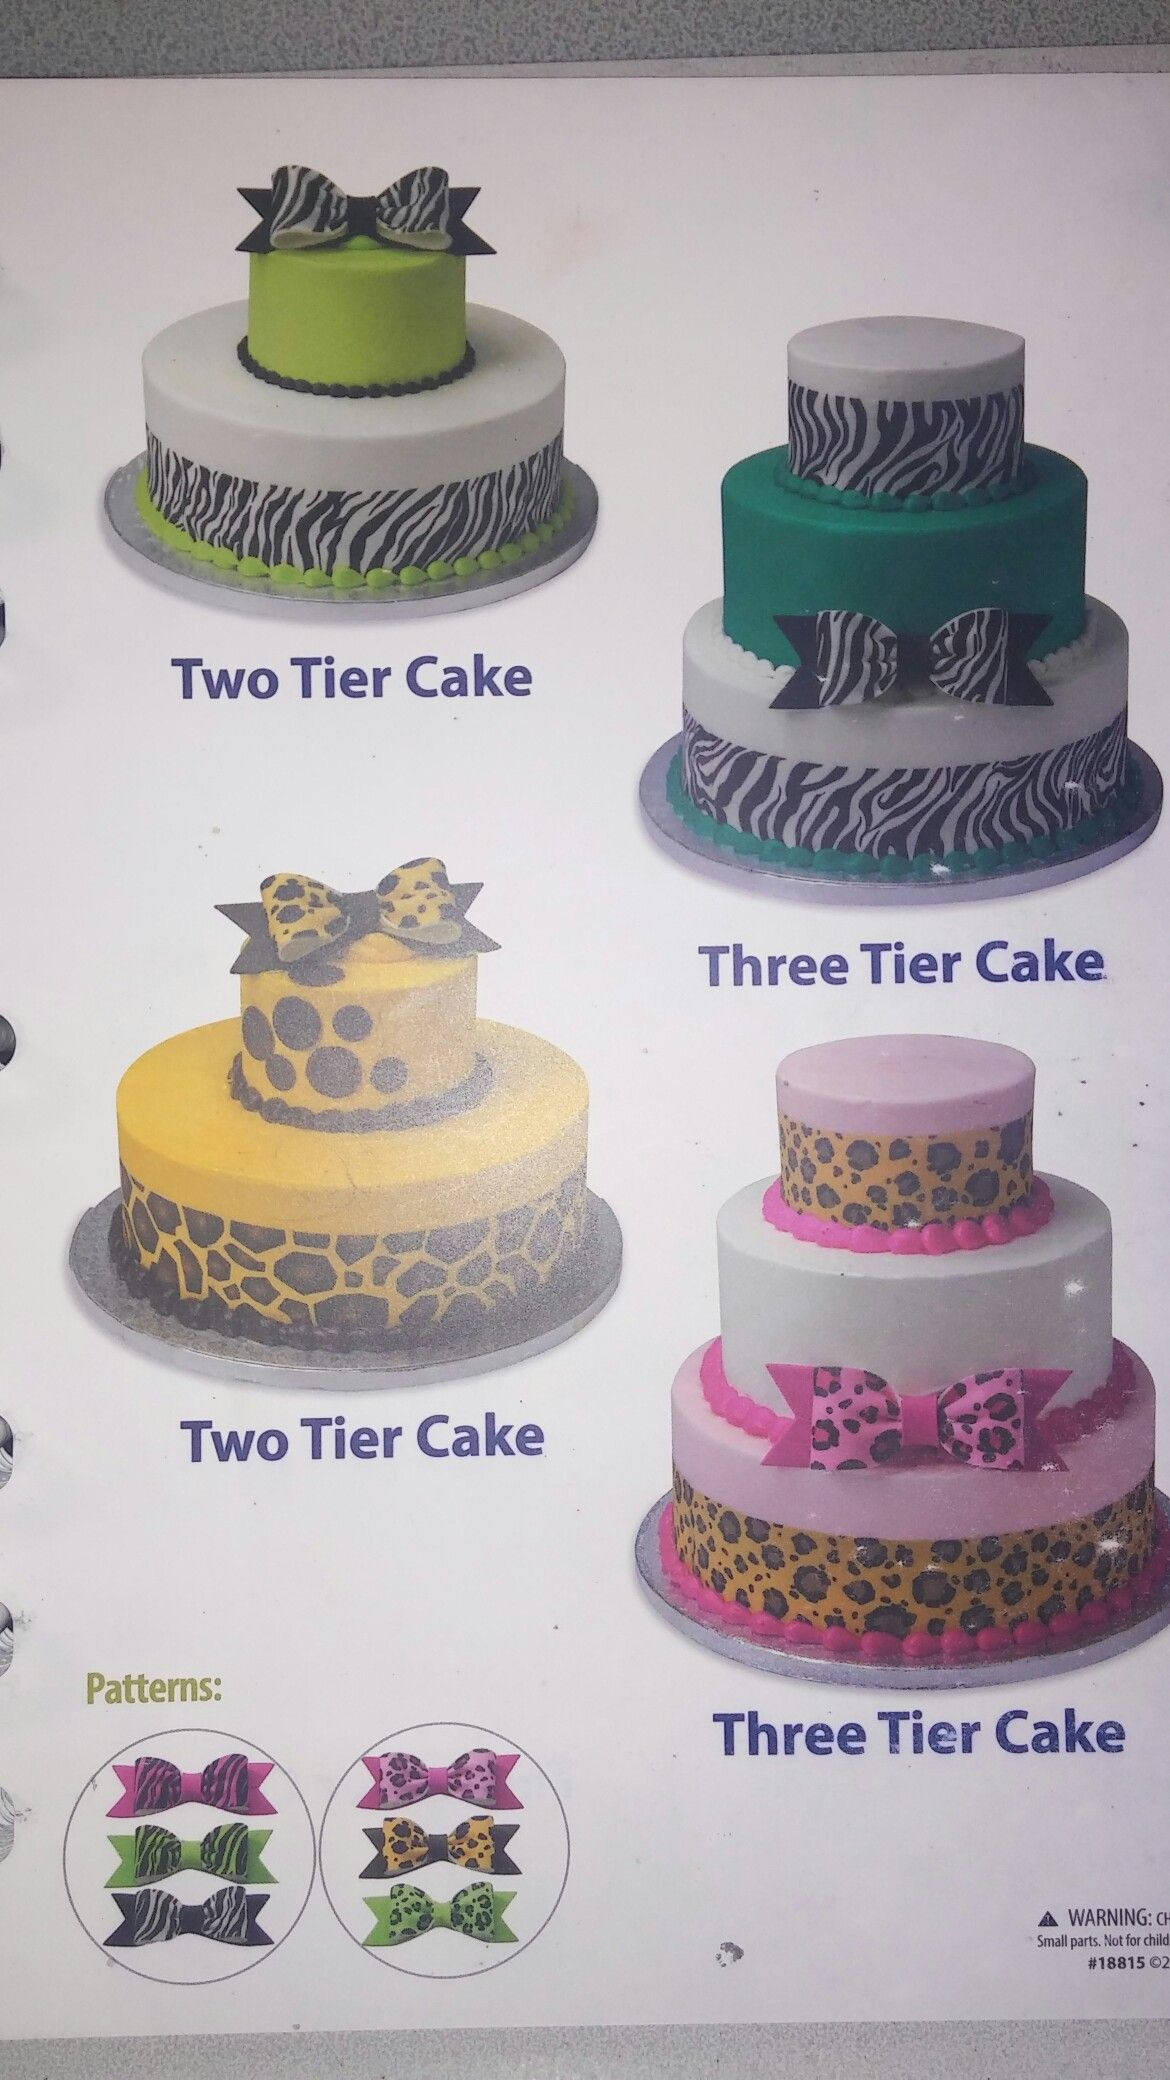 Groovy Sams Club Safari Tier Cake With Images Tiered Cakes Three Funny Birthday Cards Online Alyptdamsfinfo